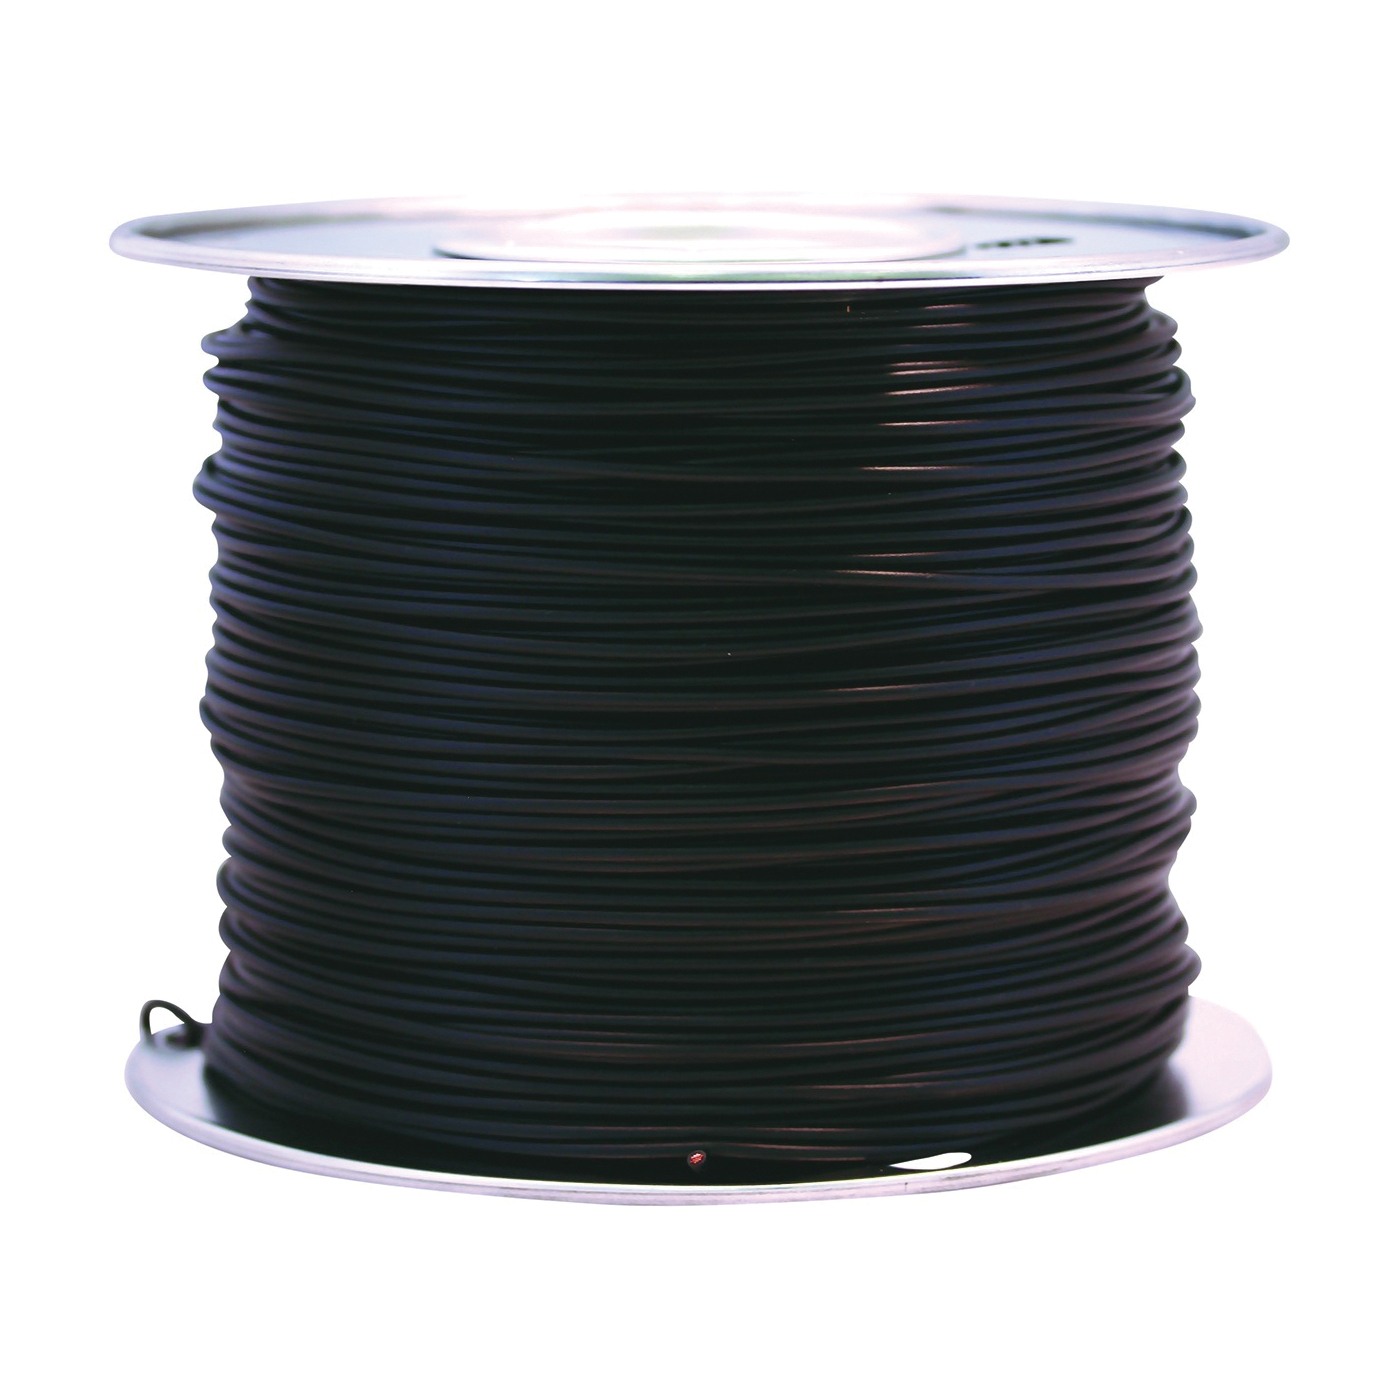 Picture of CCI 55671323 Primary Wire, 12 AWG Wire, 1 -Conductor, 60 VDC, Stranded Copper Conductor, Black Sheath